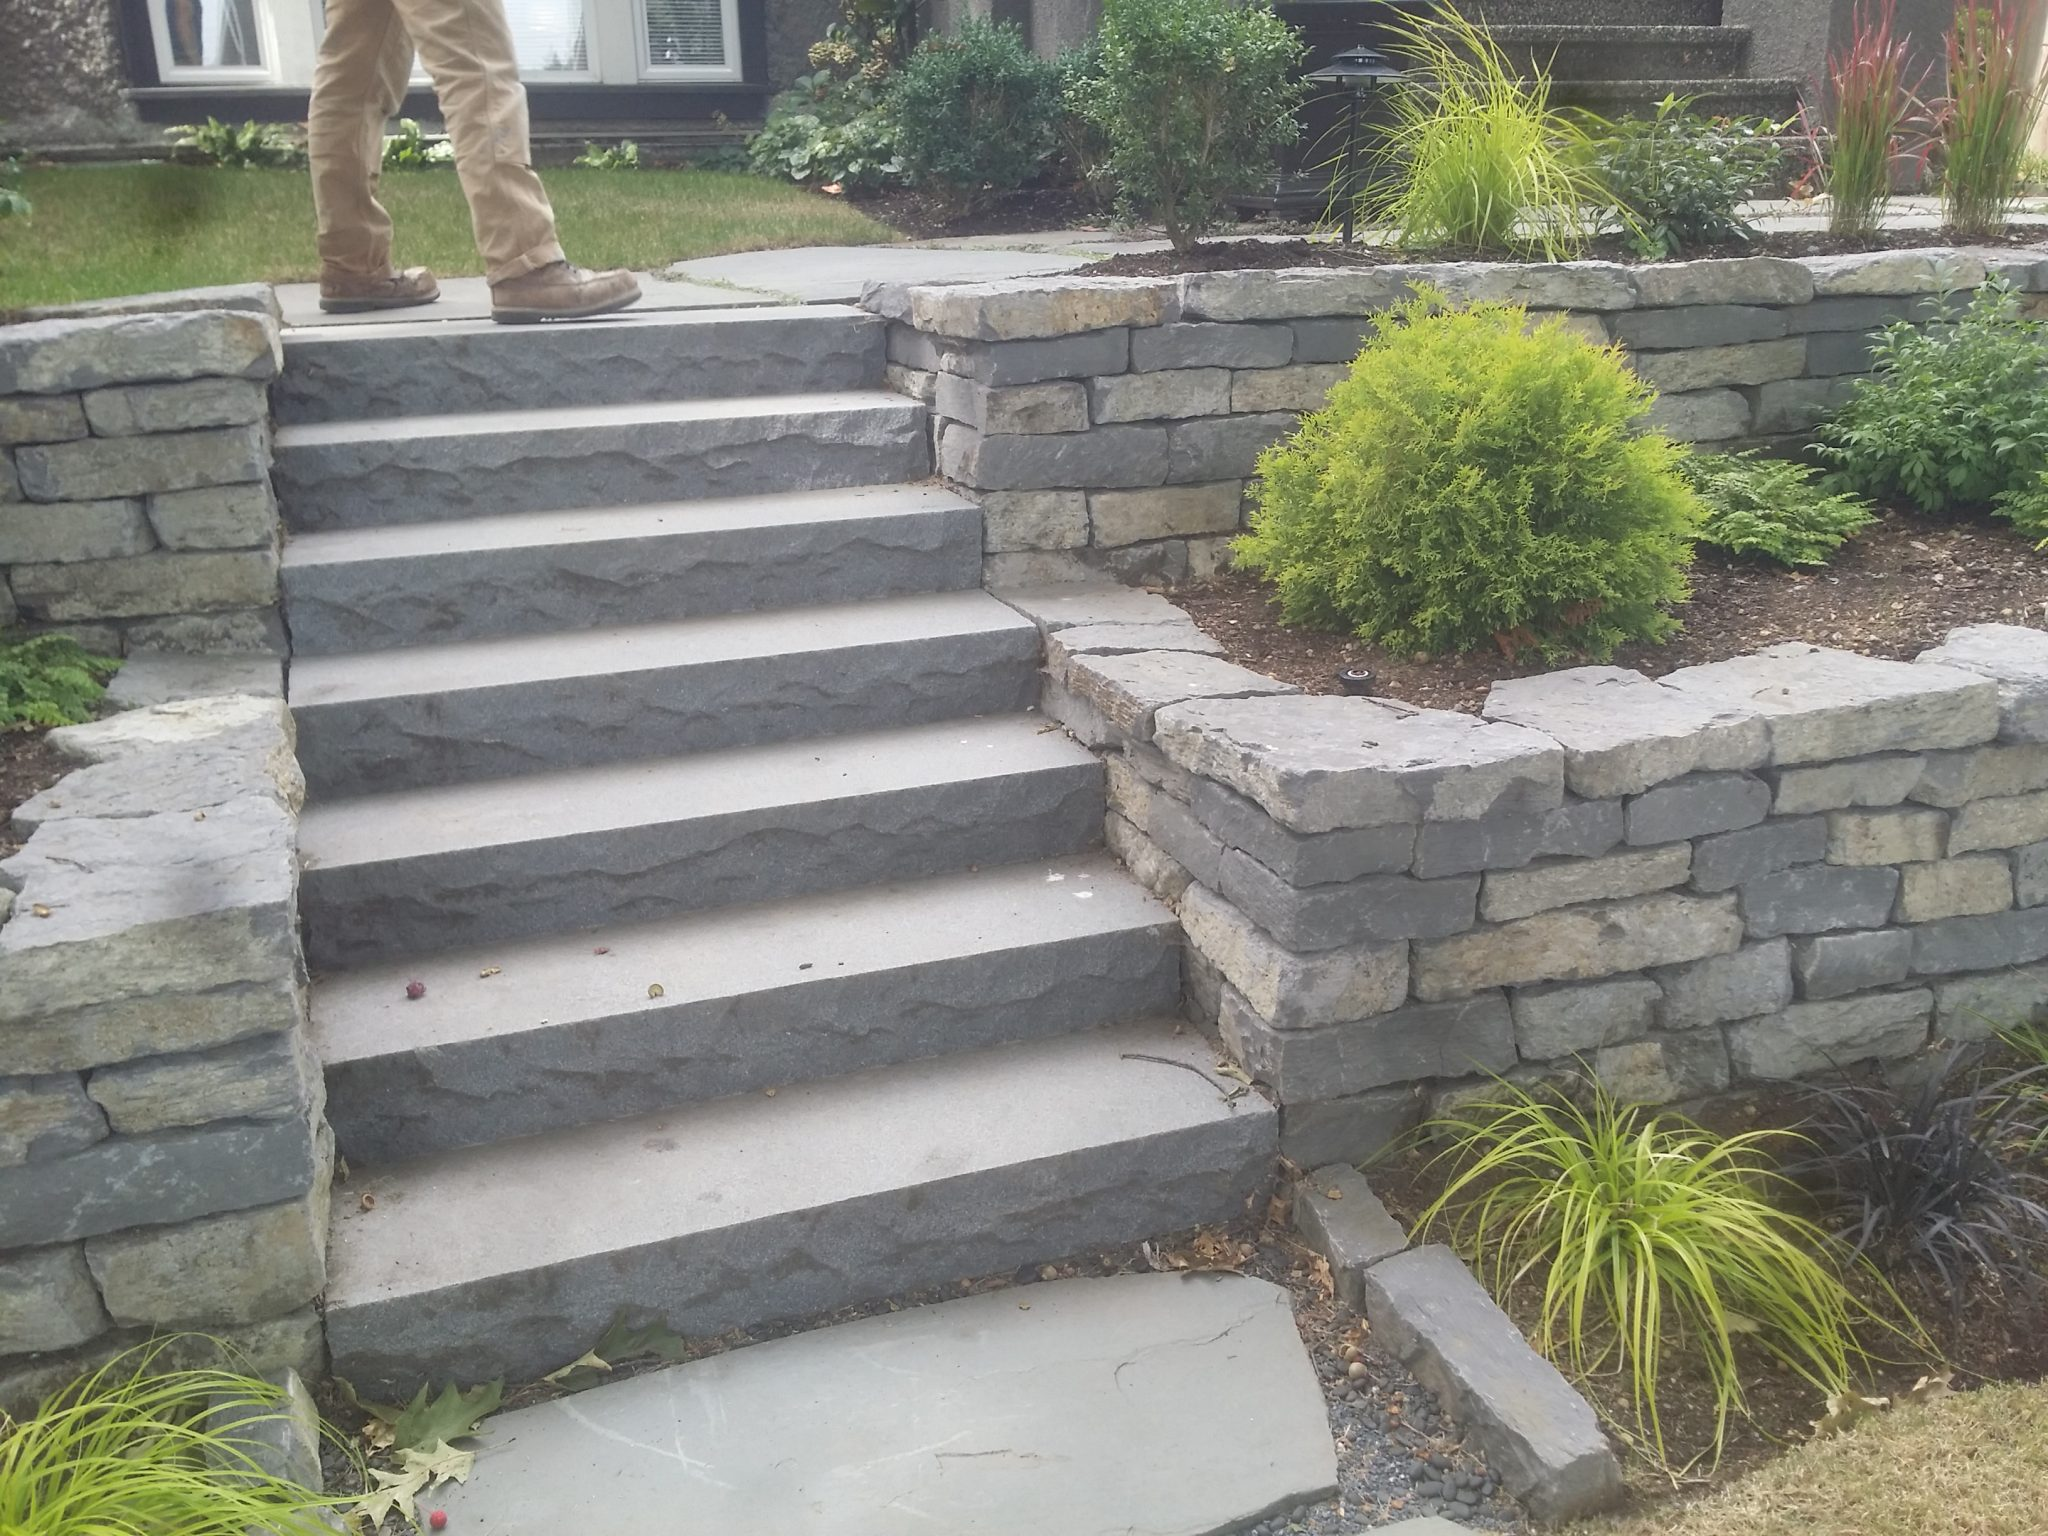 Construction Renovation landscaping Vancouver